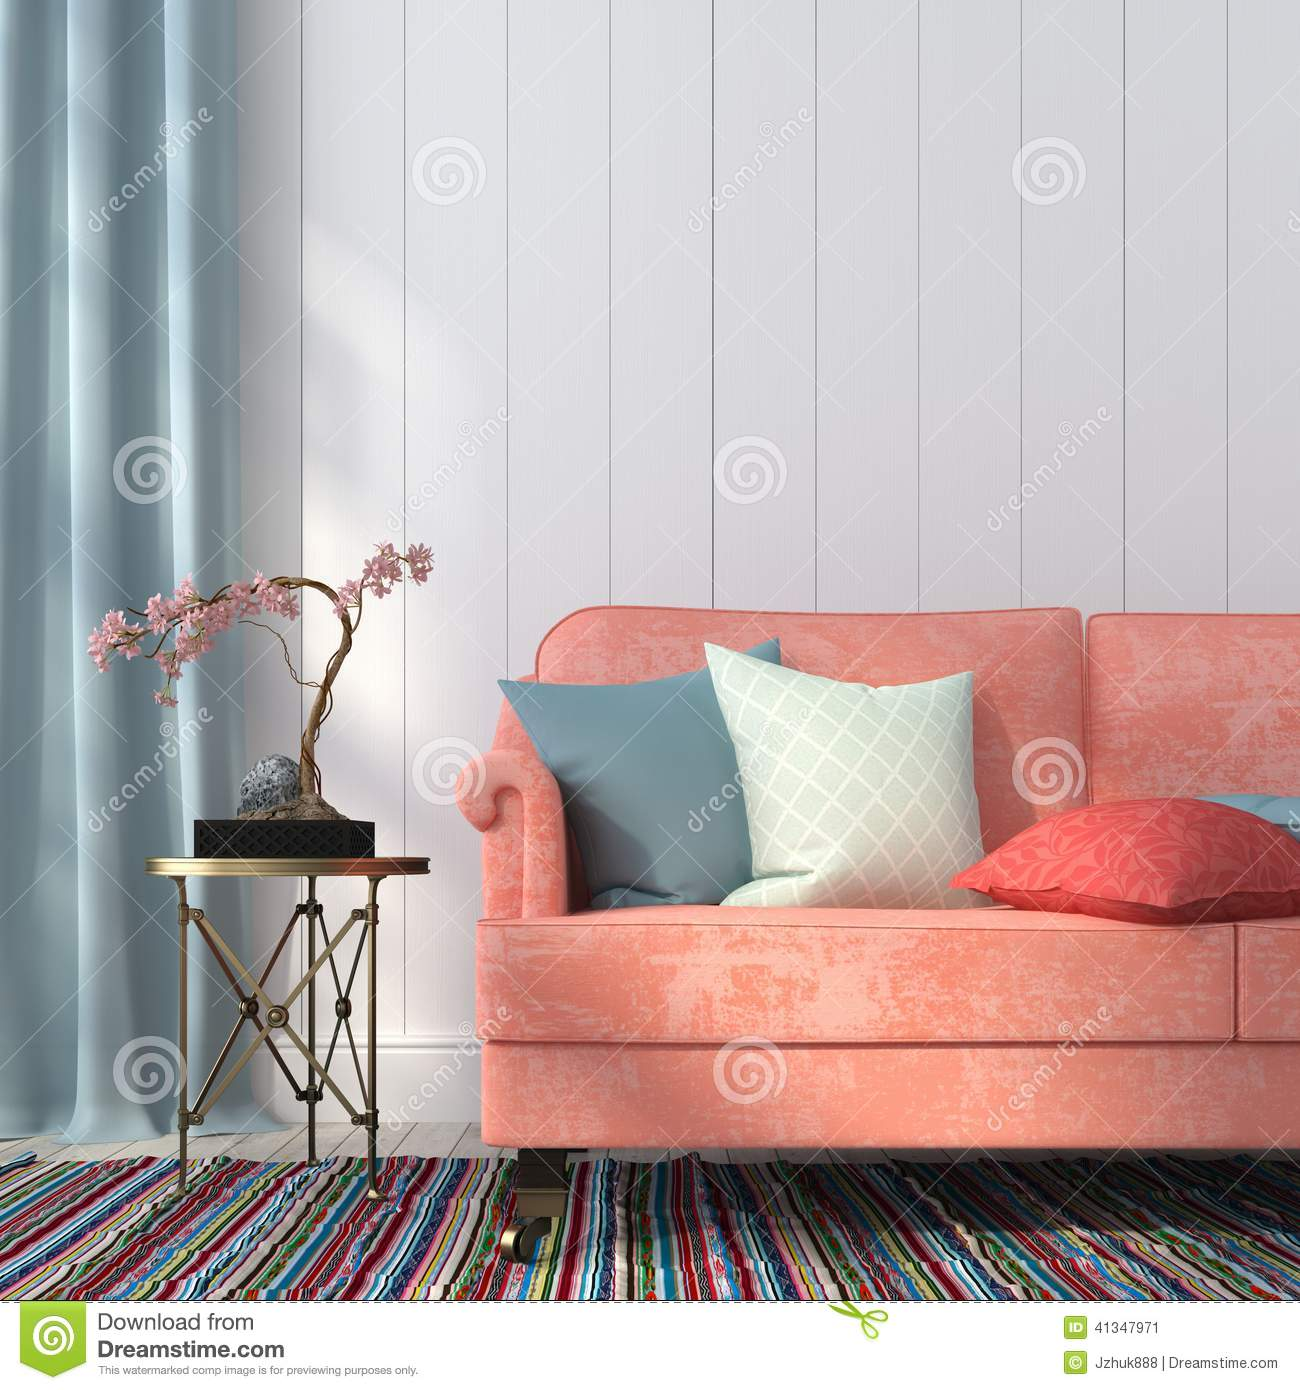 Salmon-colored Sofa And A Metal Table Stock Illustration - Image ...